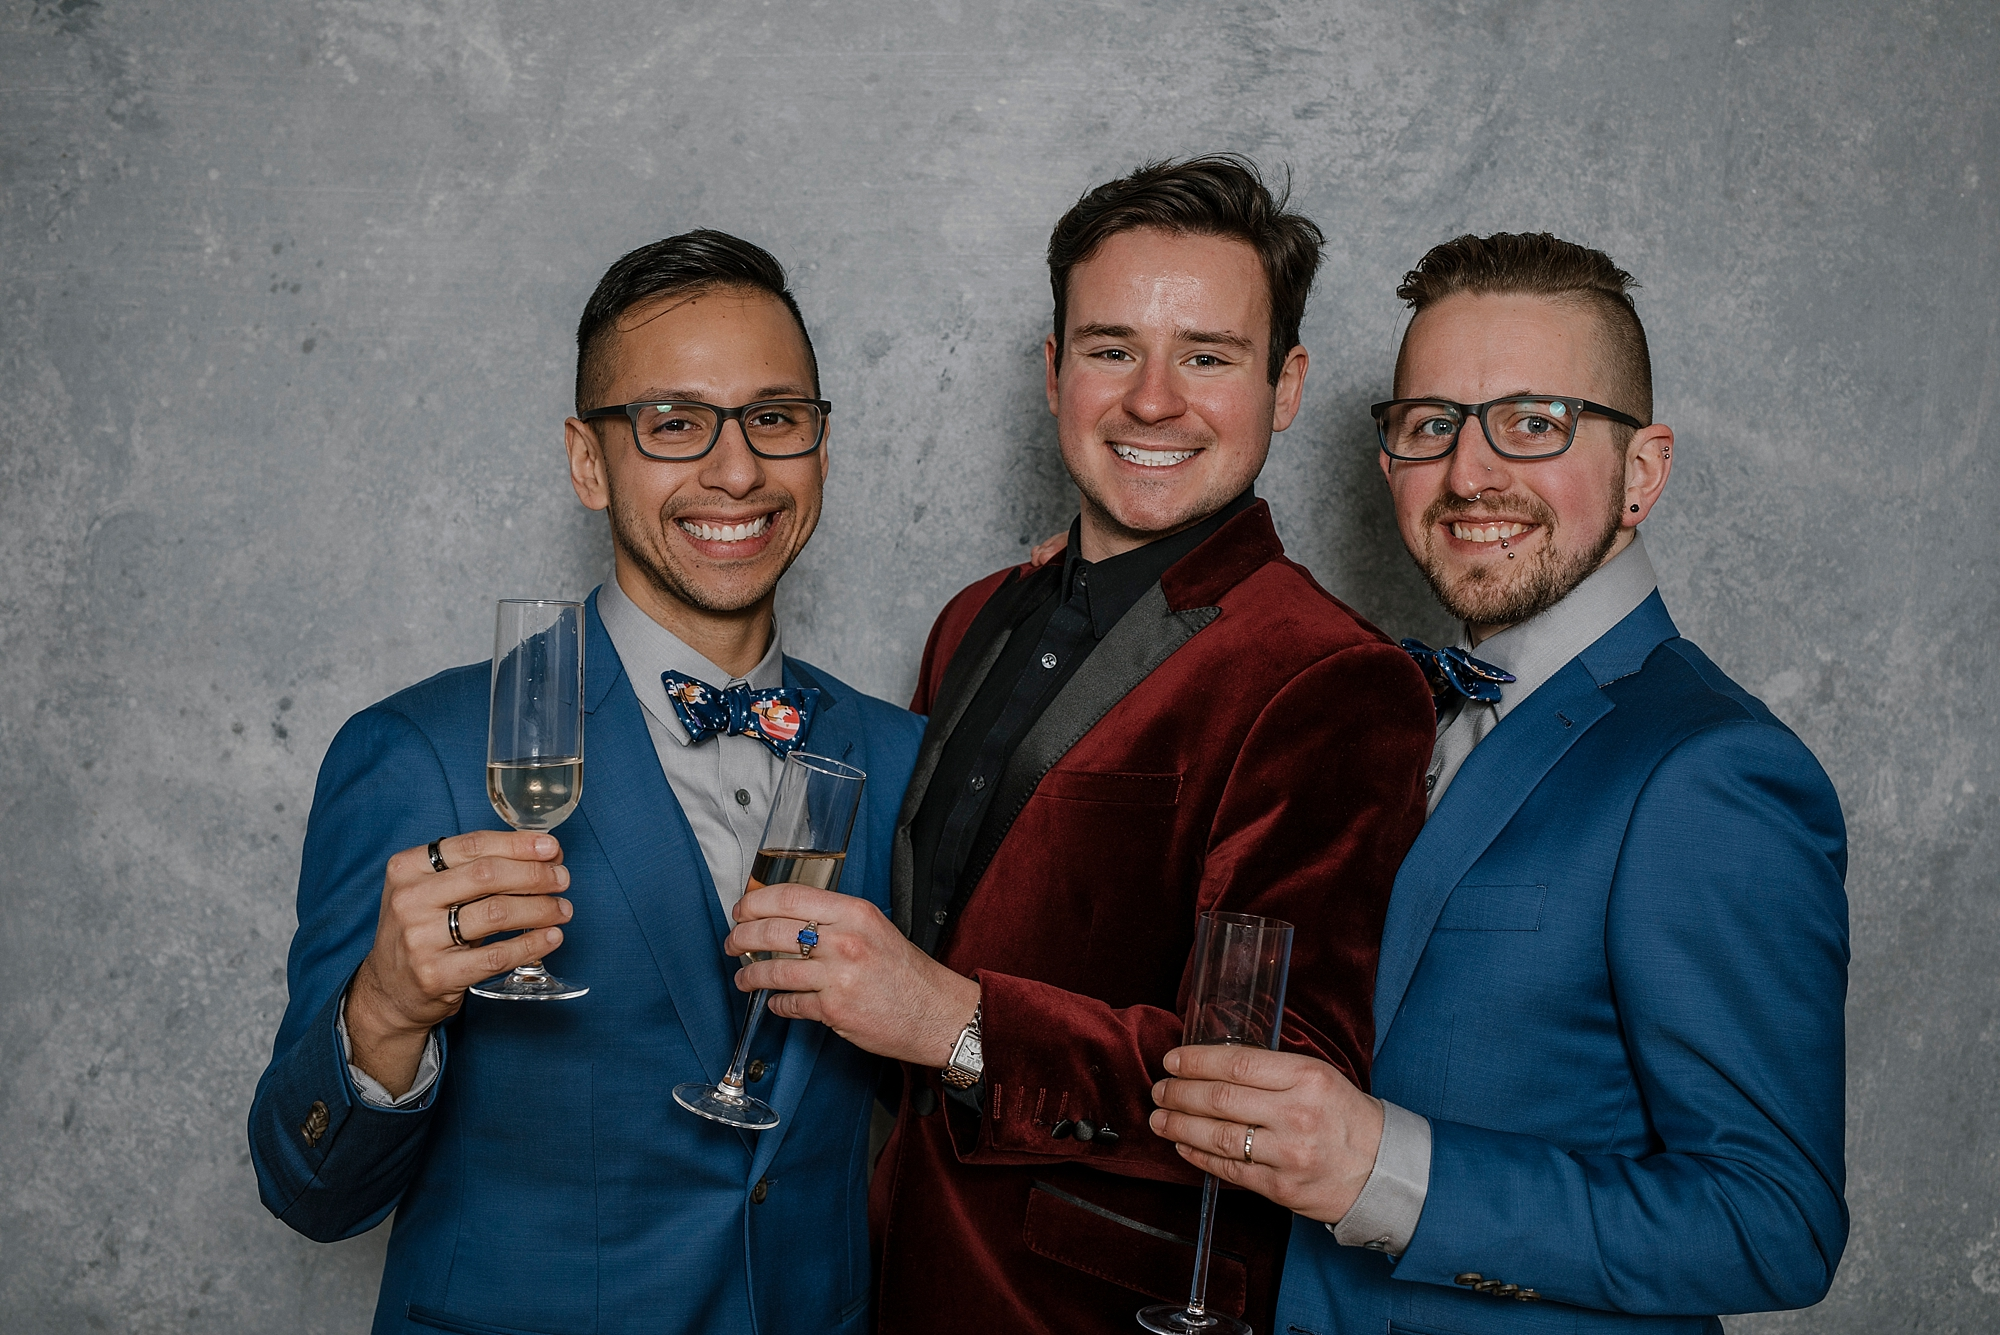 Joe_Mac_Creative_Philadelphia_Philly_LGBT_Gay_Engagement_Wedding_Photography__0099.jpg